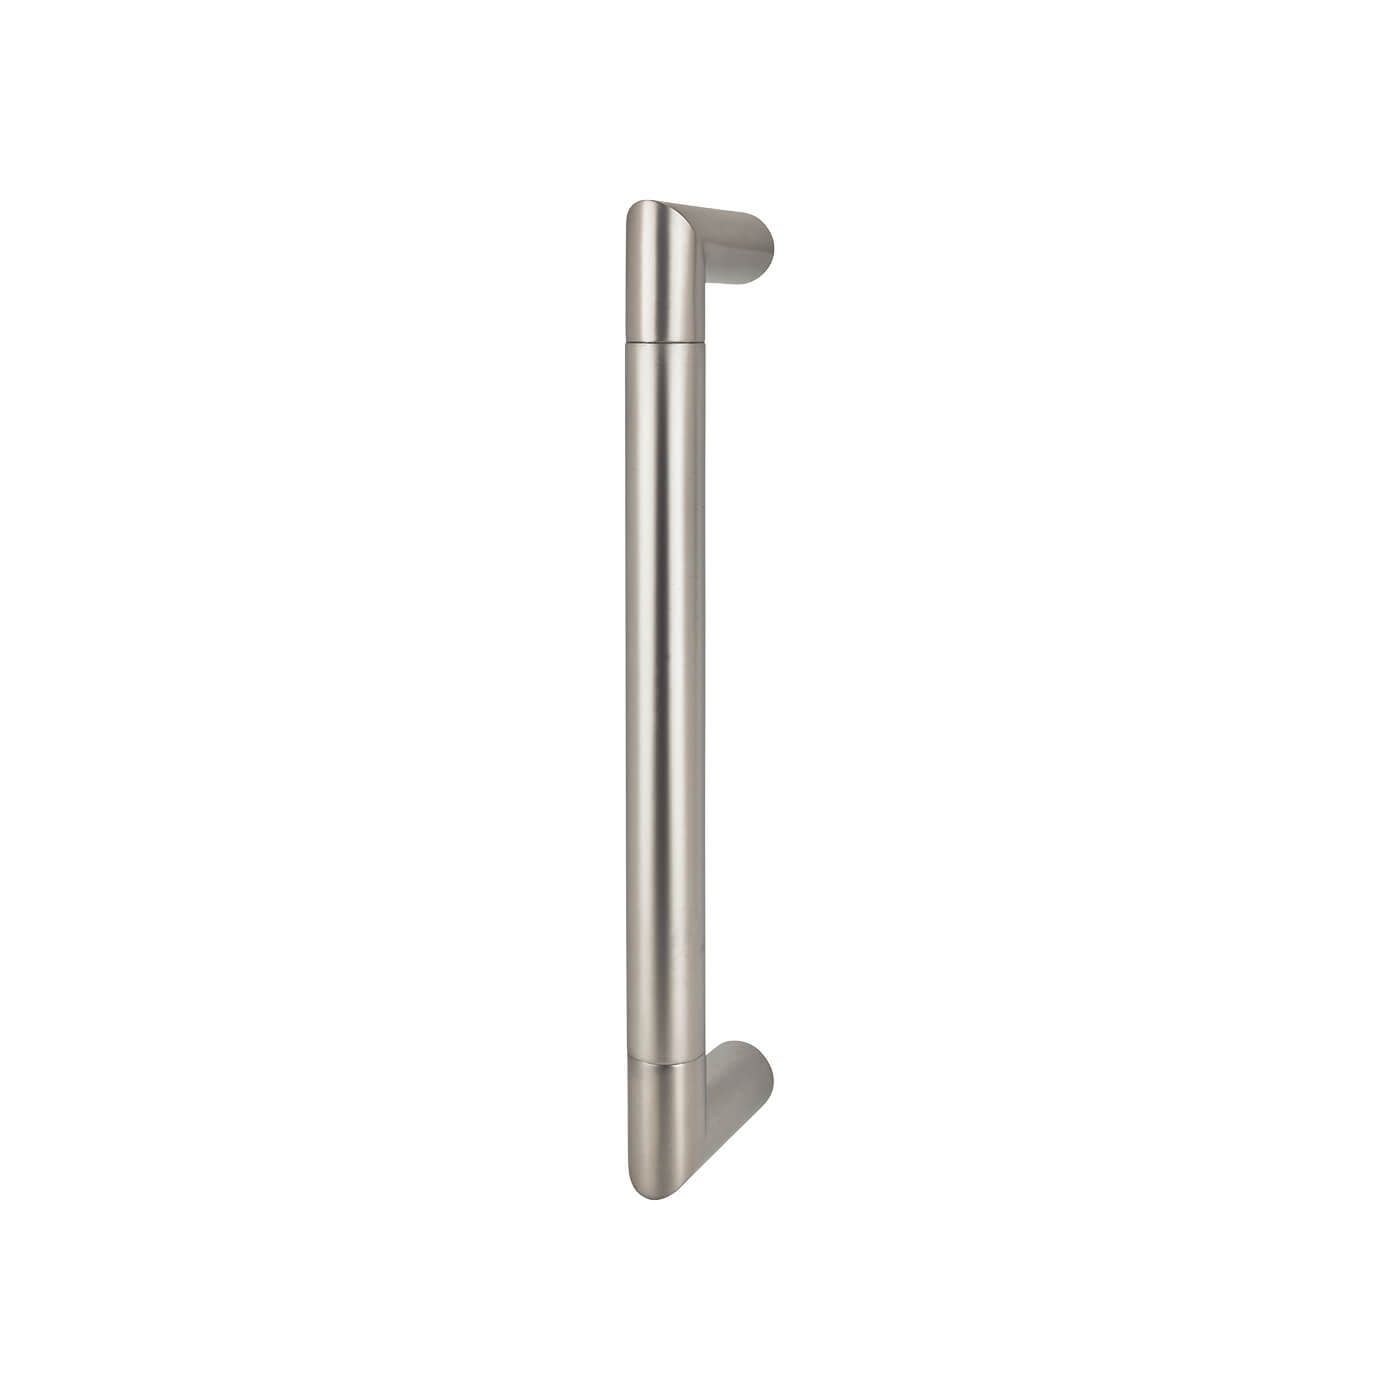 Serrozetta Trend Pull Handle - 245 x 19mm - Satin Chrome)